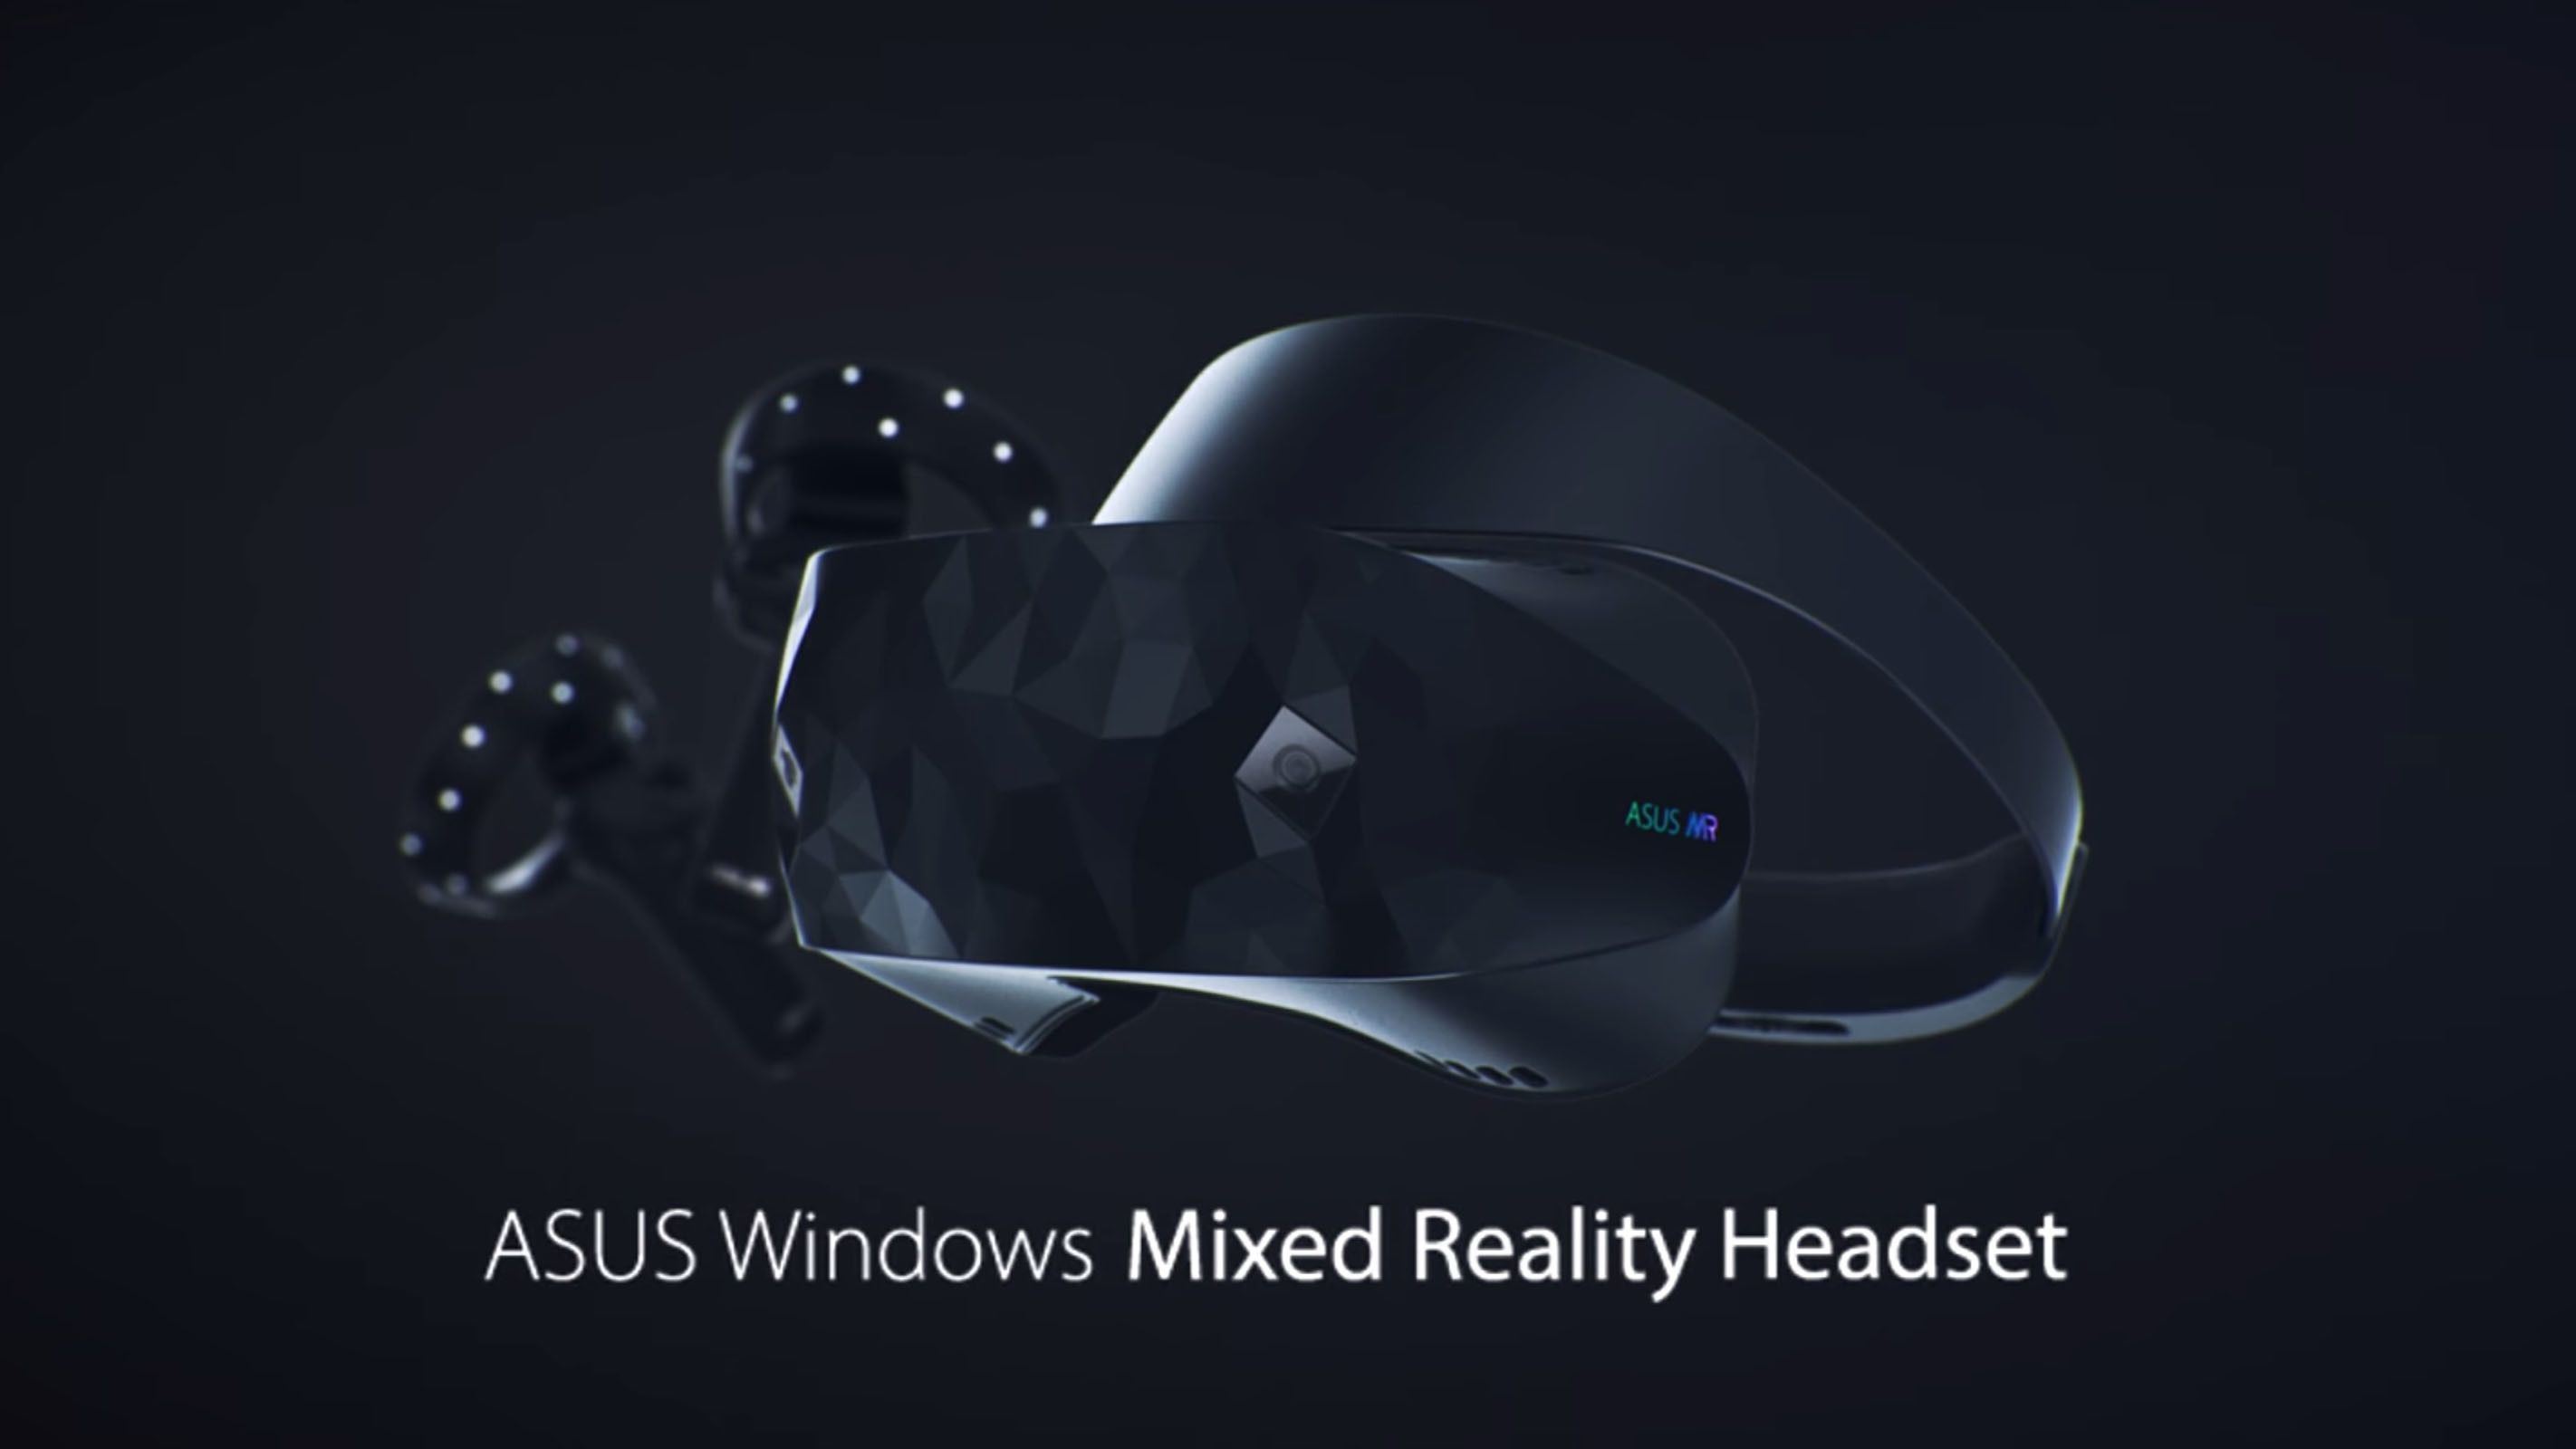 Asus' Mixed Reality headset goes on sale for $429